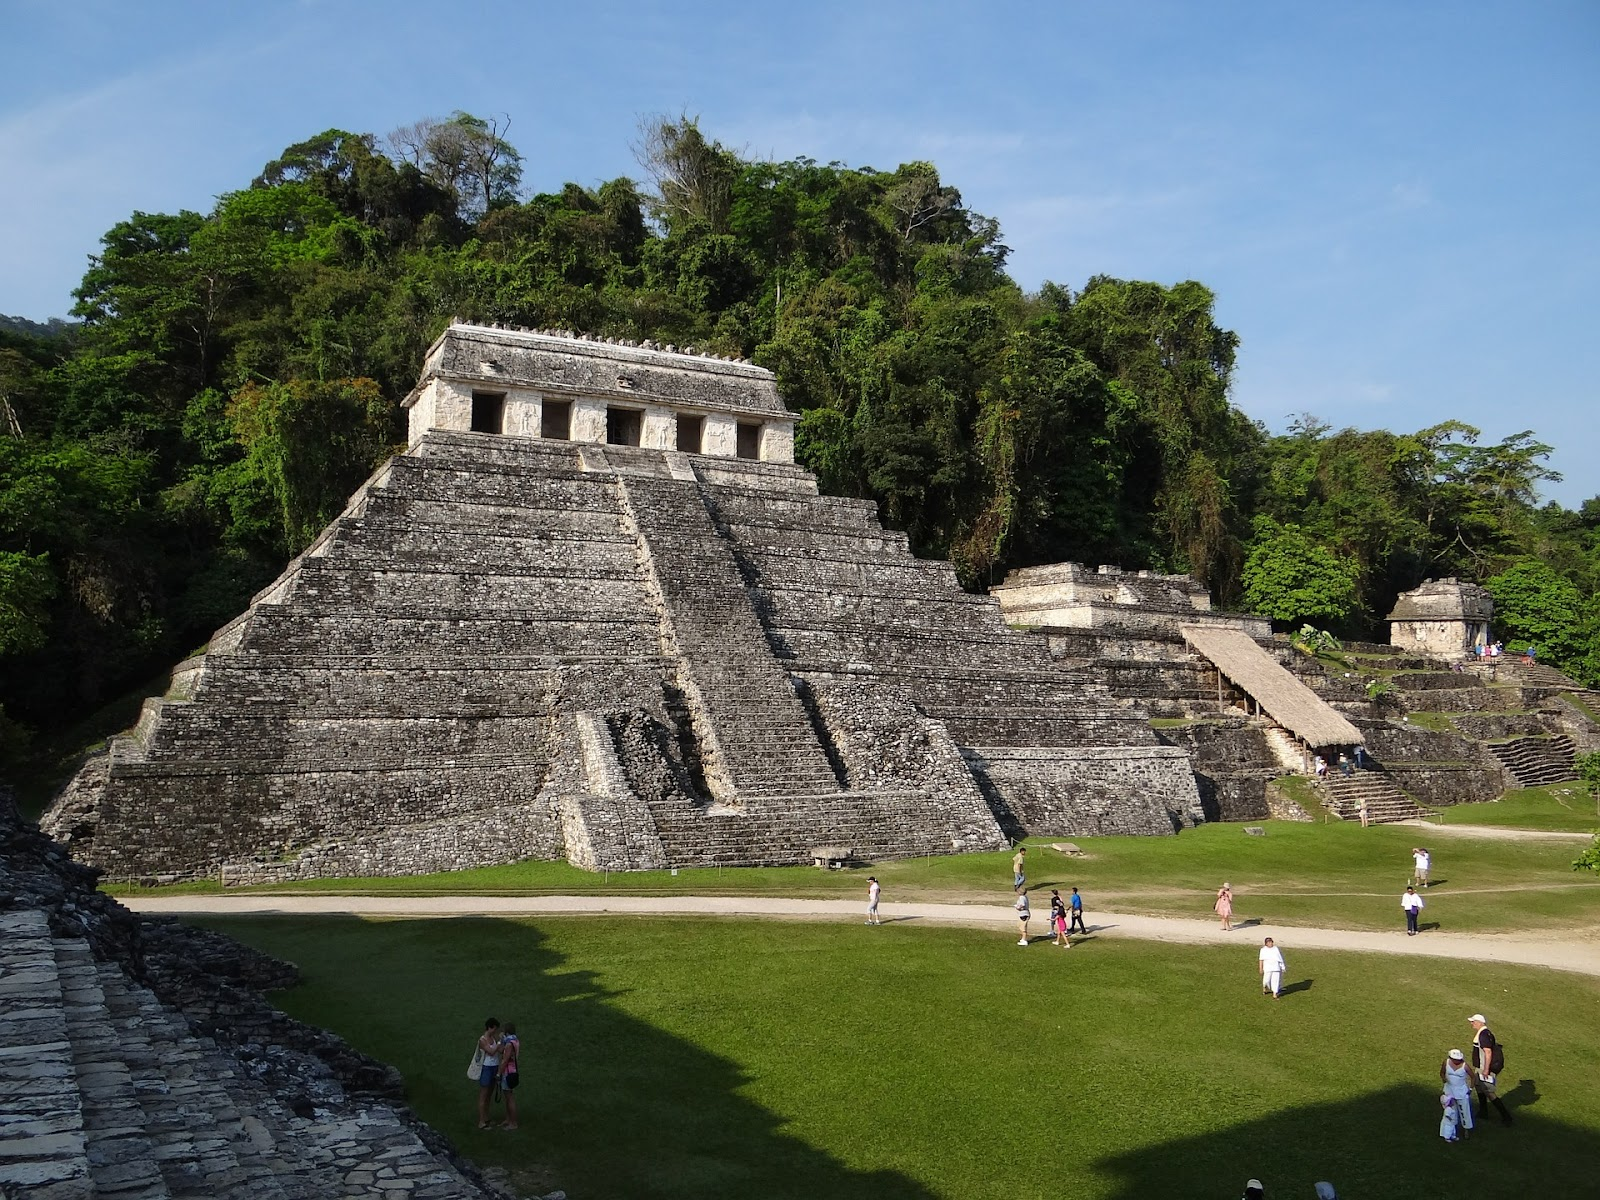 Mayan temples in Mexico.